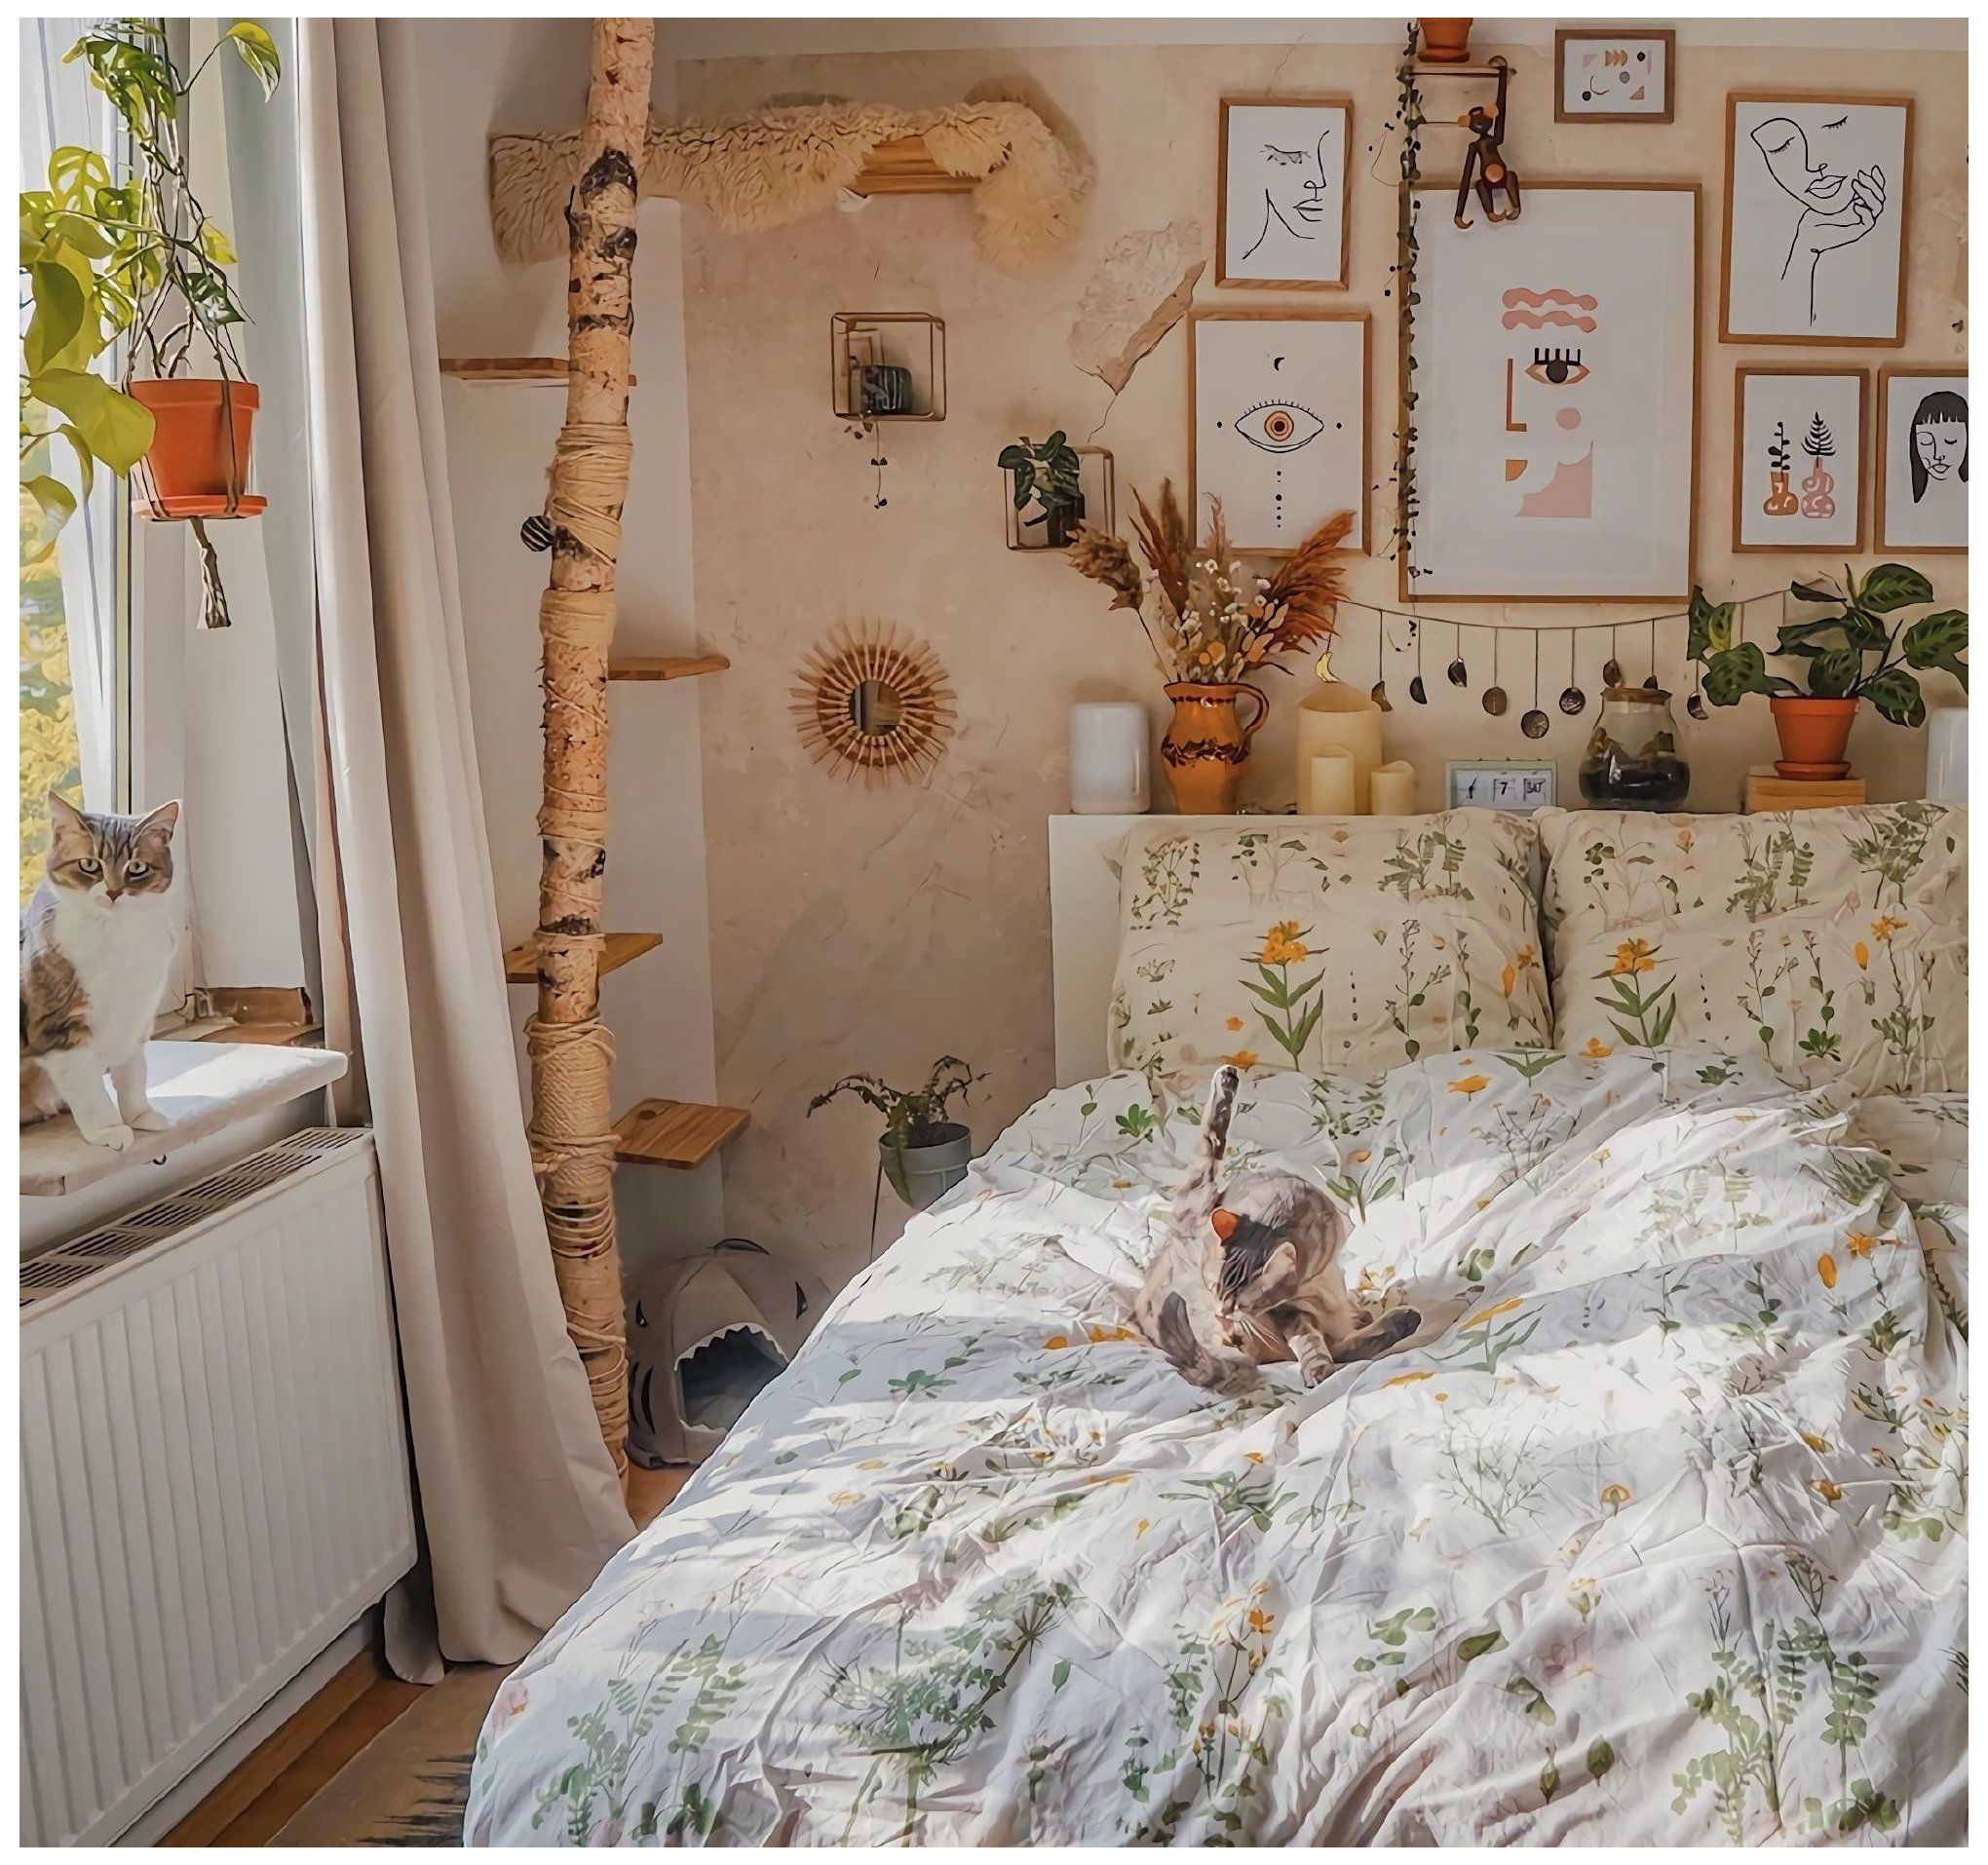 Cottage Core Cottage Aesthetic Bedroom Cottageaestheticbedroom Cottage Aesthetic Plants C Room Inspiration Bedroom Aesthetic Bedroom Redecorate Bedroom